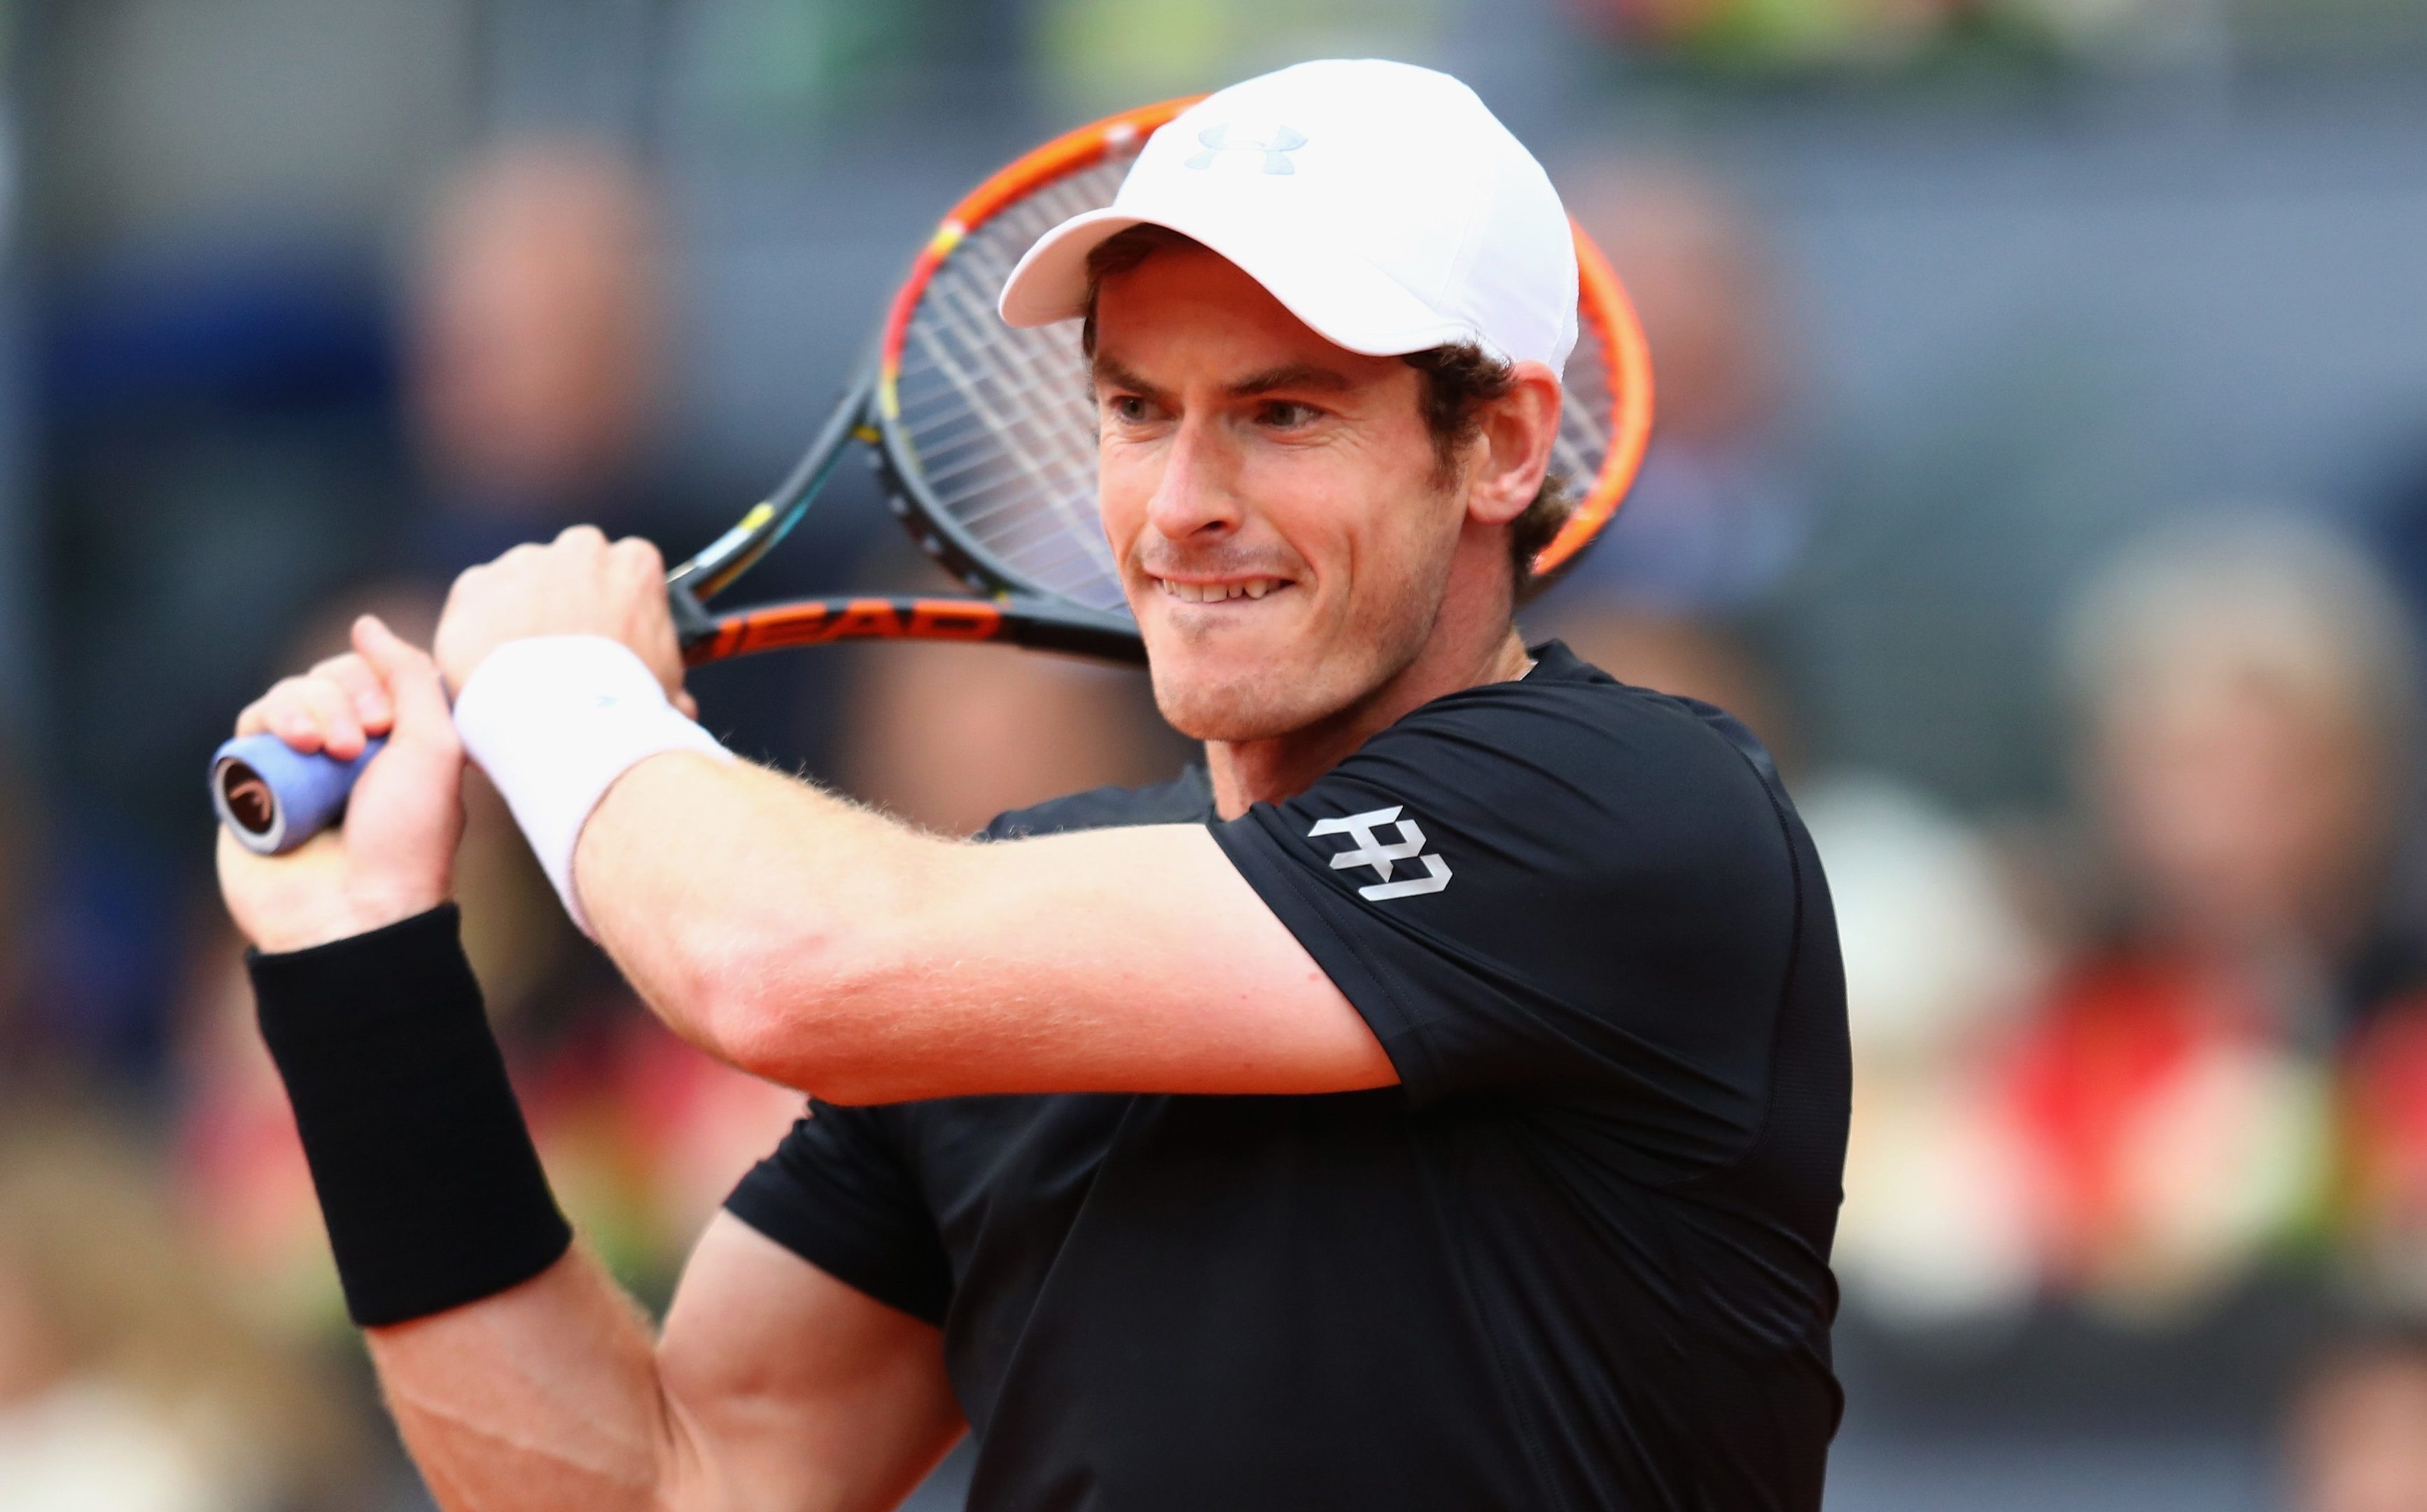 Andy Murray has split from his coach ahead of a busy summer.